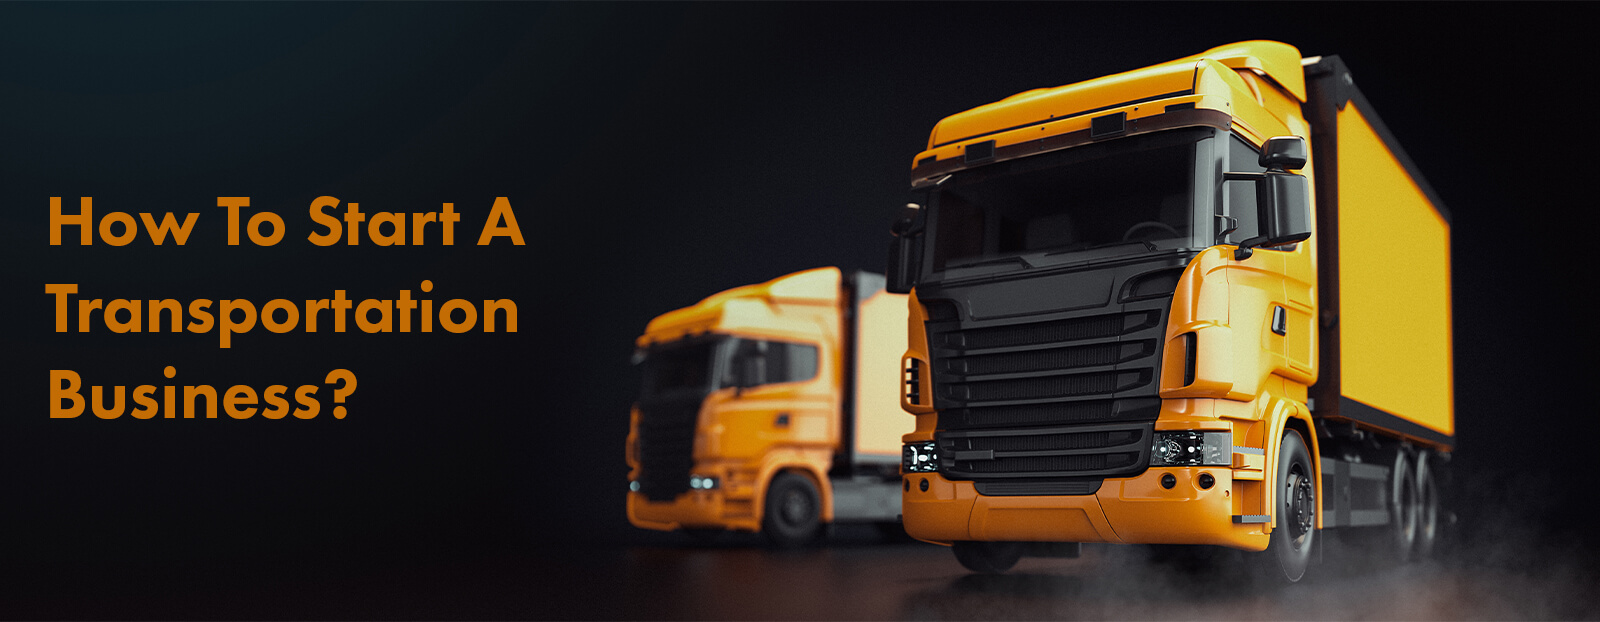 How To Start A Transportation Business?